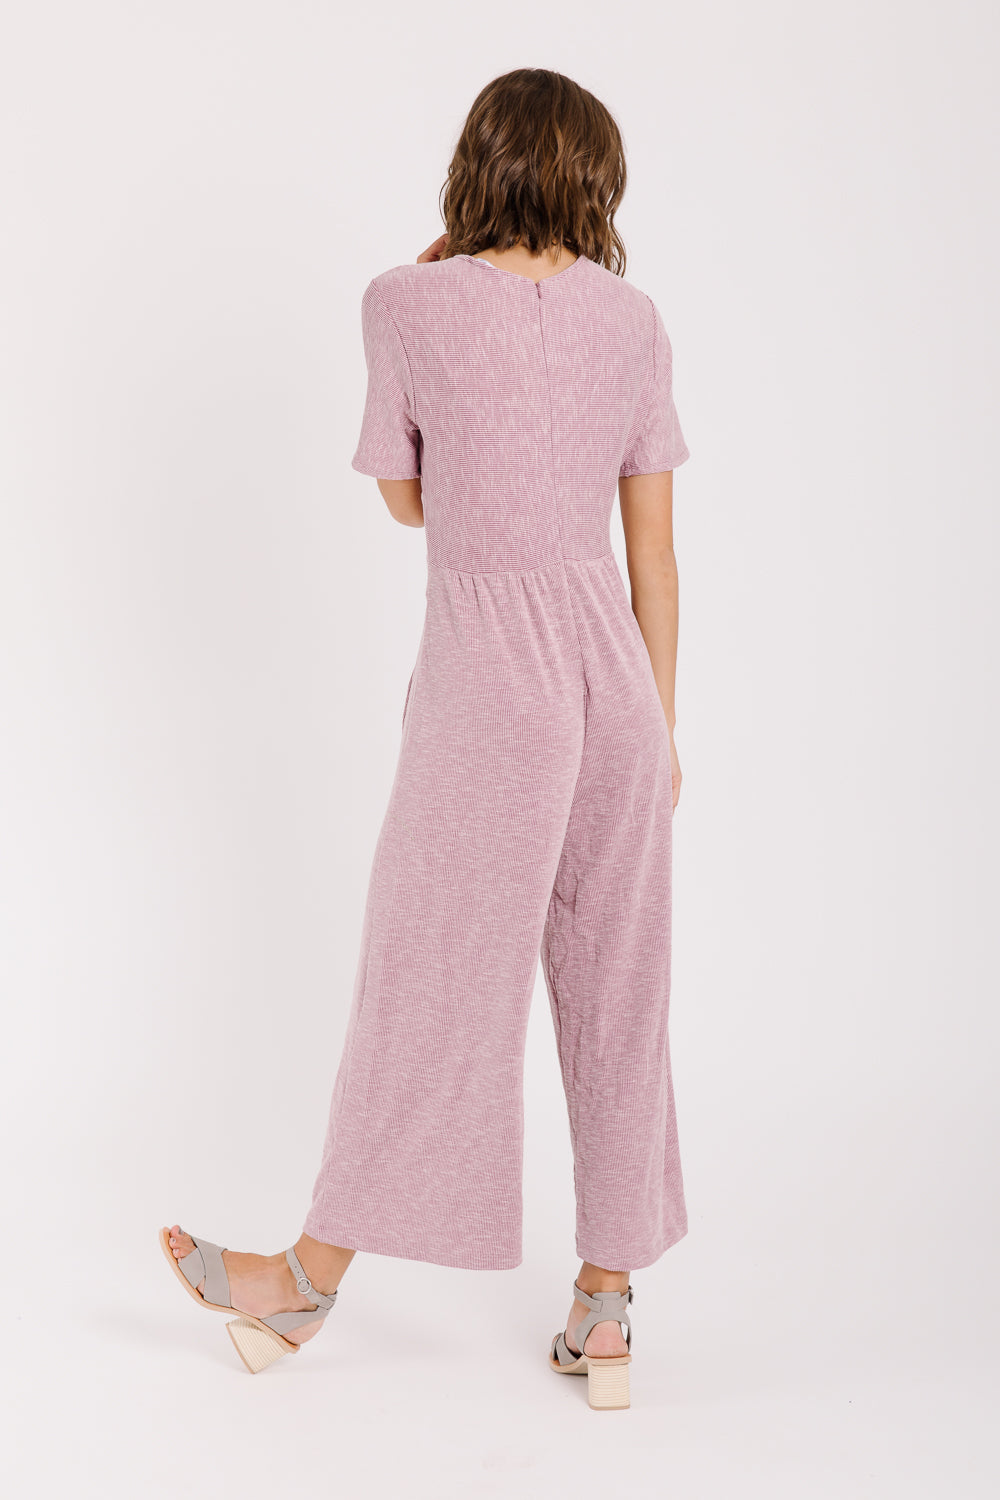 The Killington Bow Jumpsuit in Rose